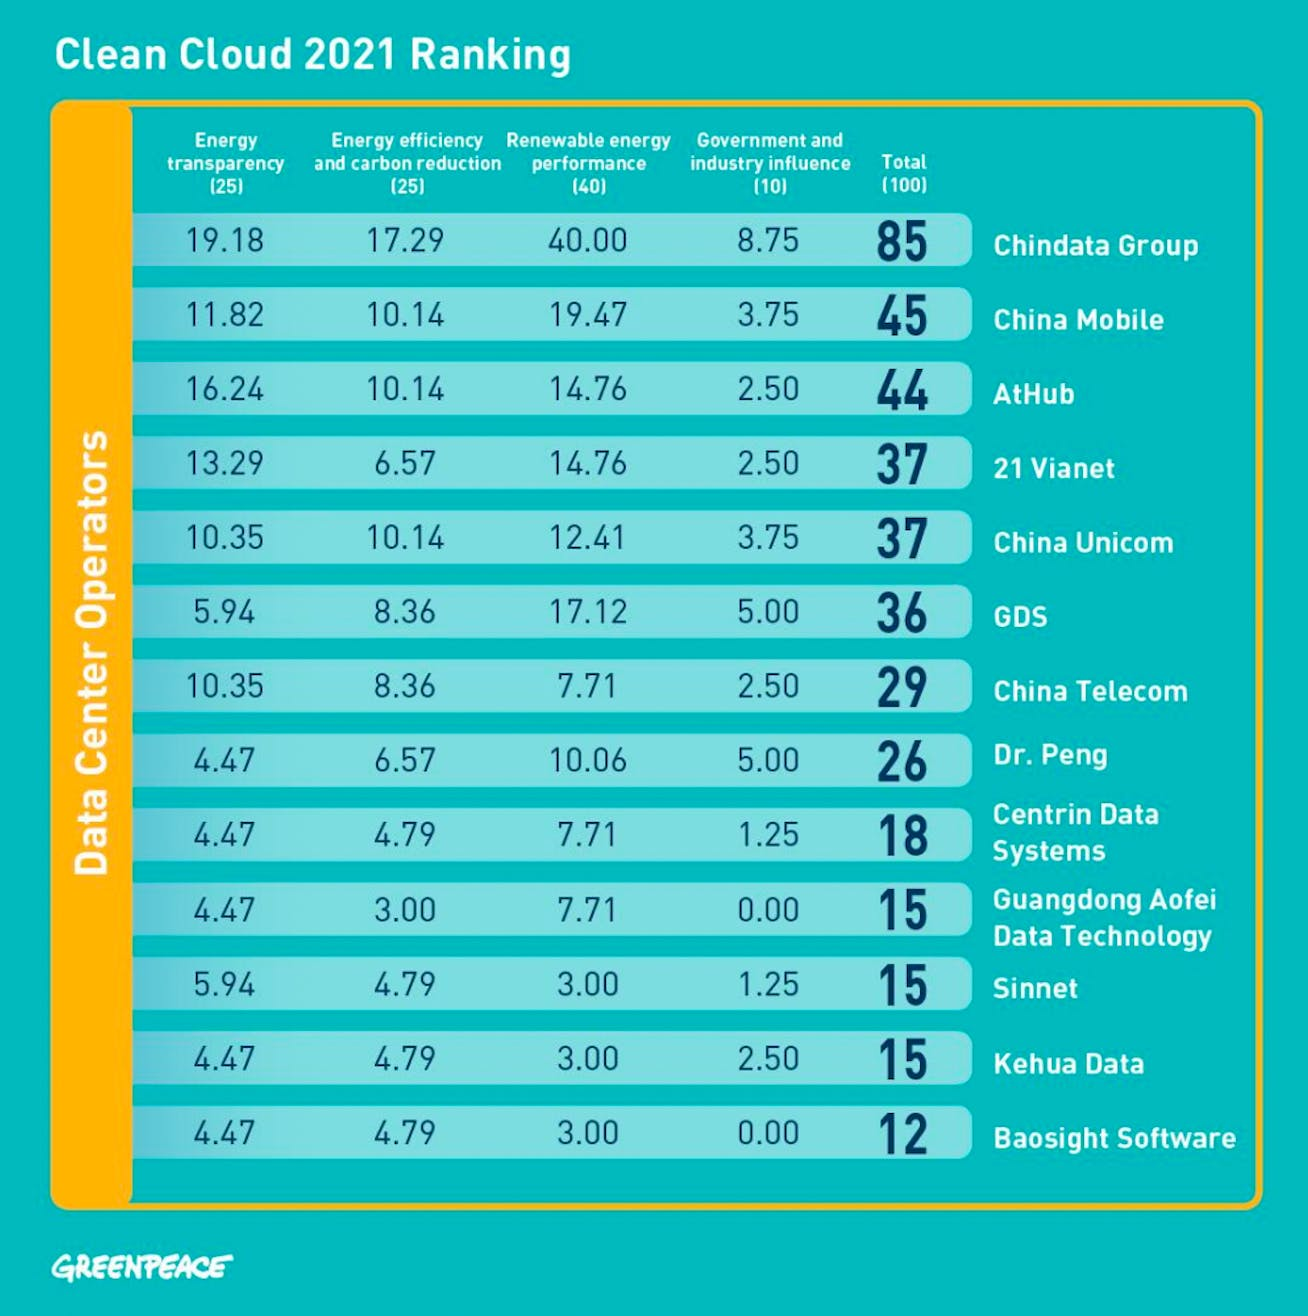 Chinadata rops the Clean Cloud Ranking for data centre companies. Source: Clean Cloud Ranking 2021